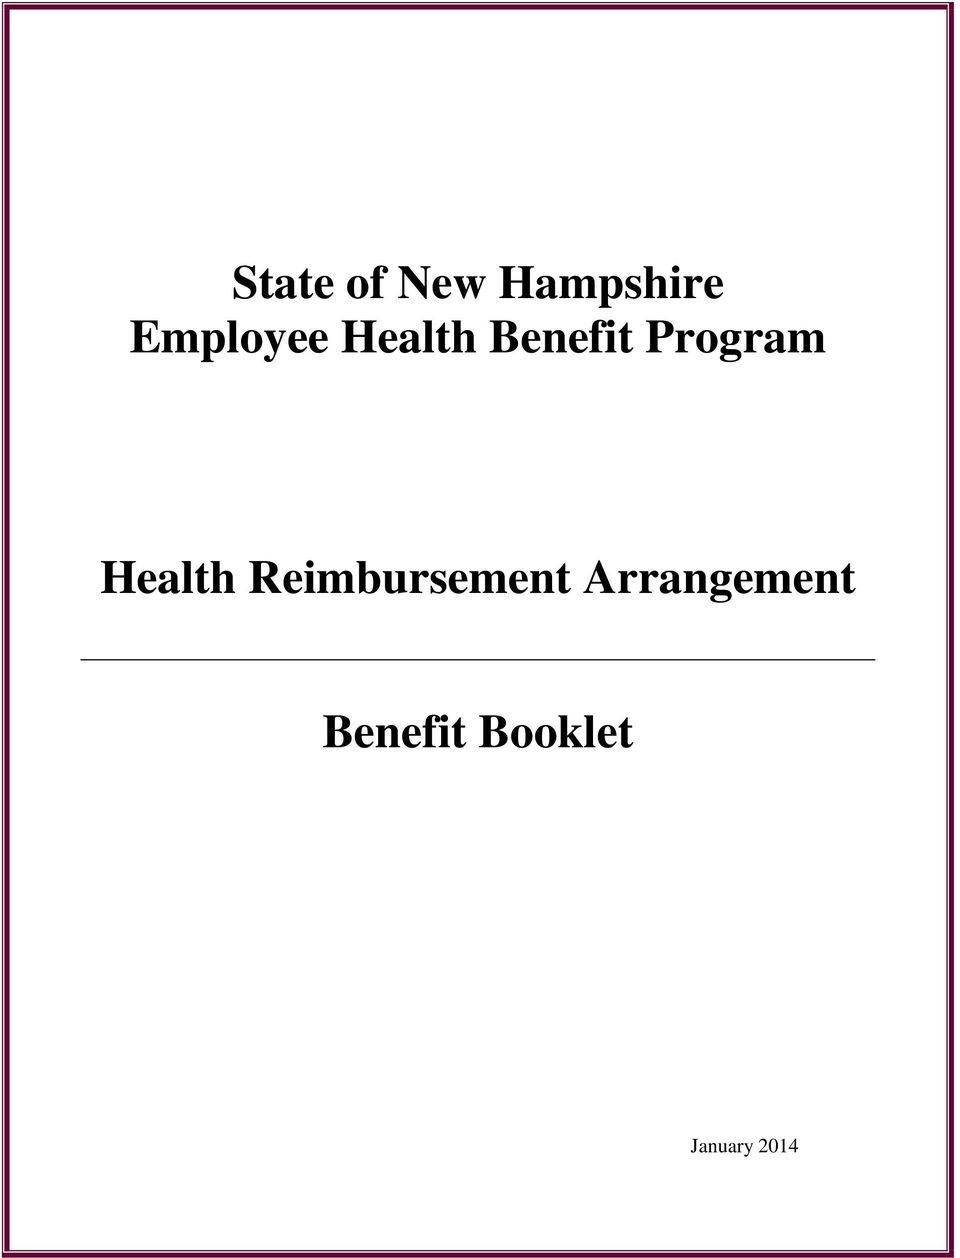 Program Health Reimbursement